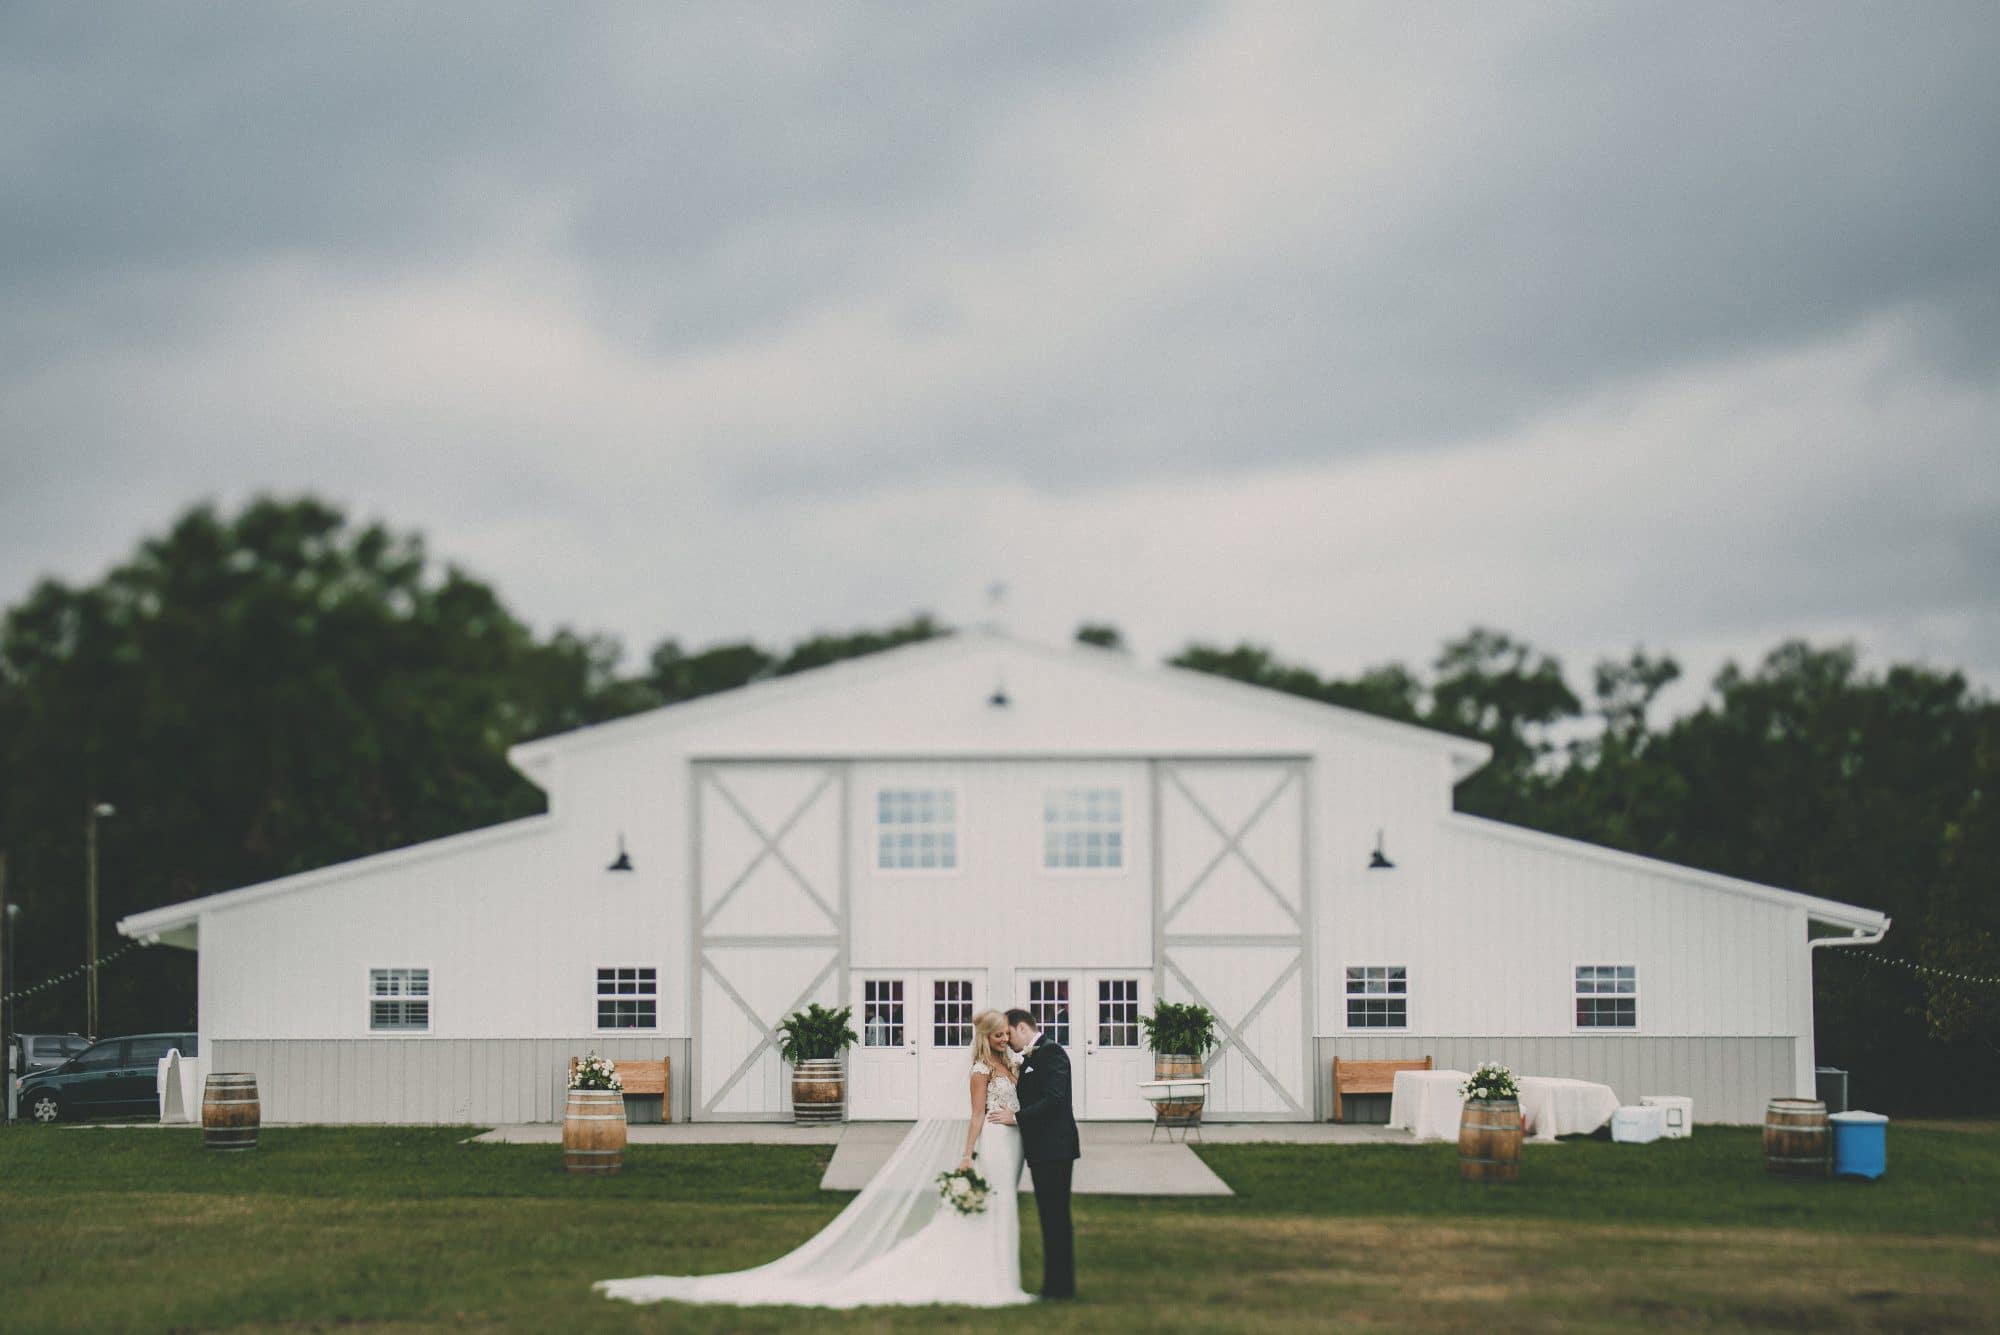 The Barn at Waller Ranch - couple kissing outside of cute white barn